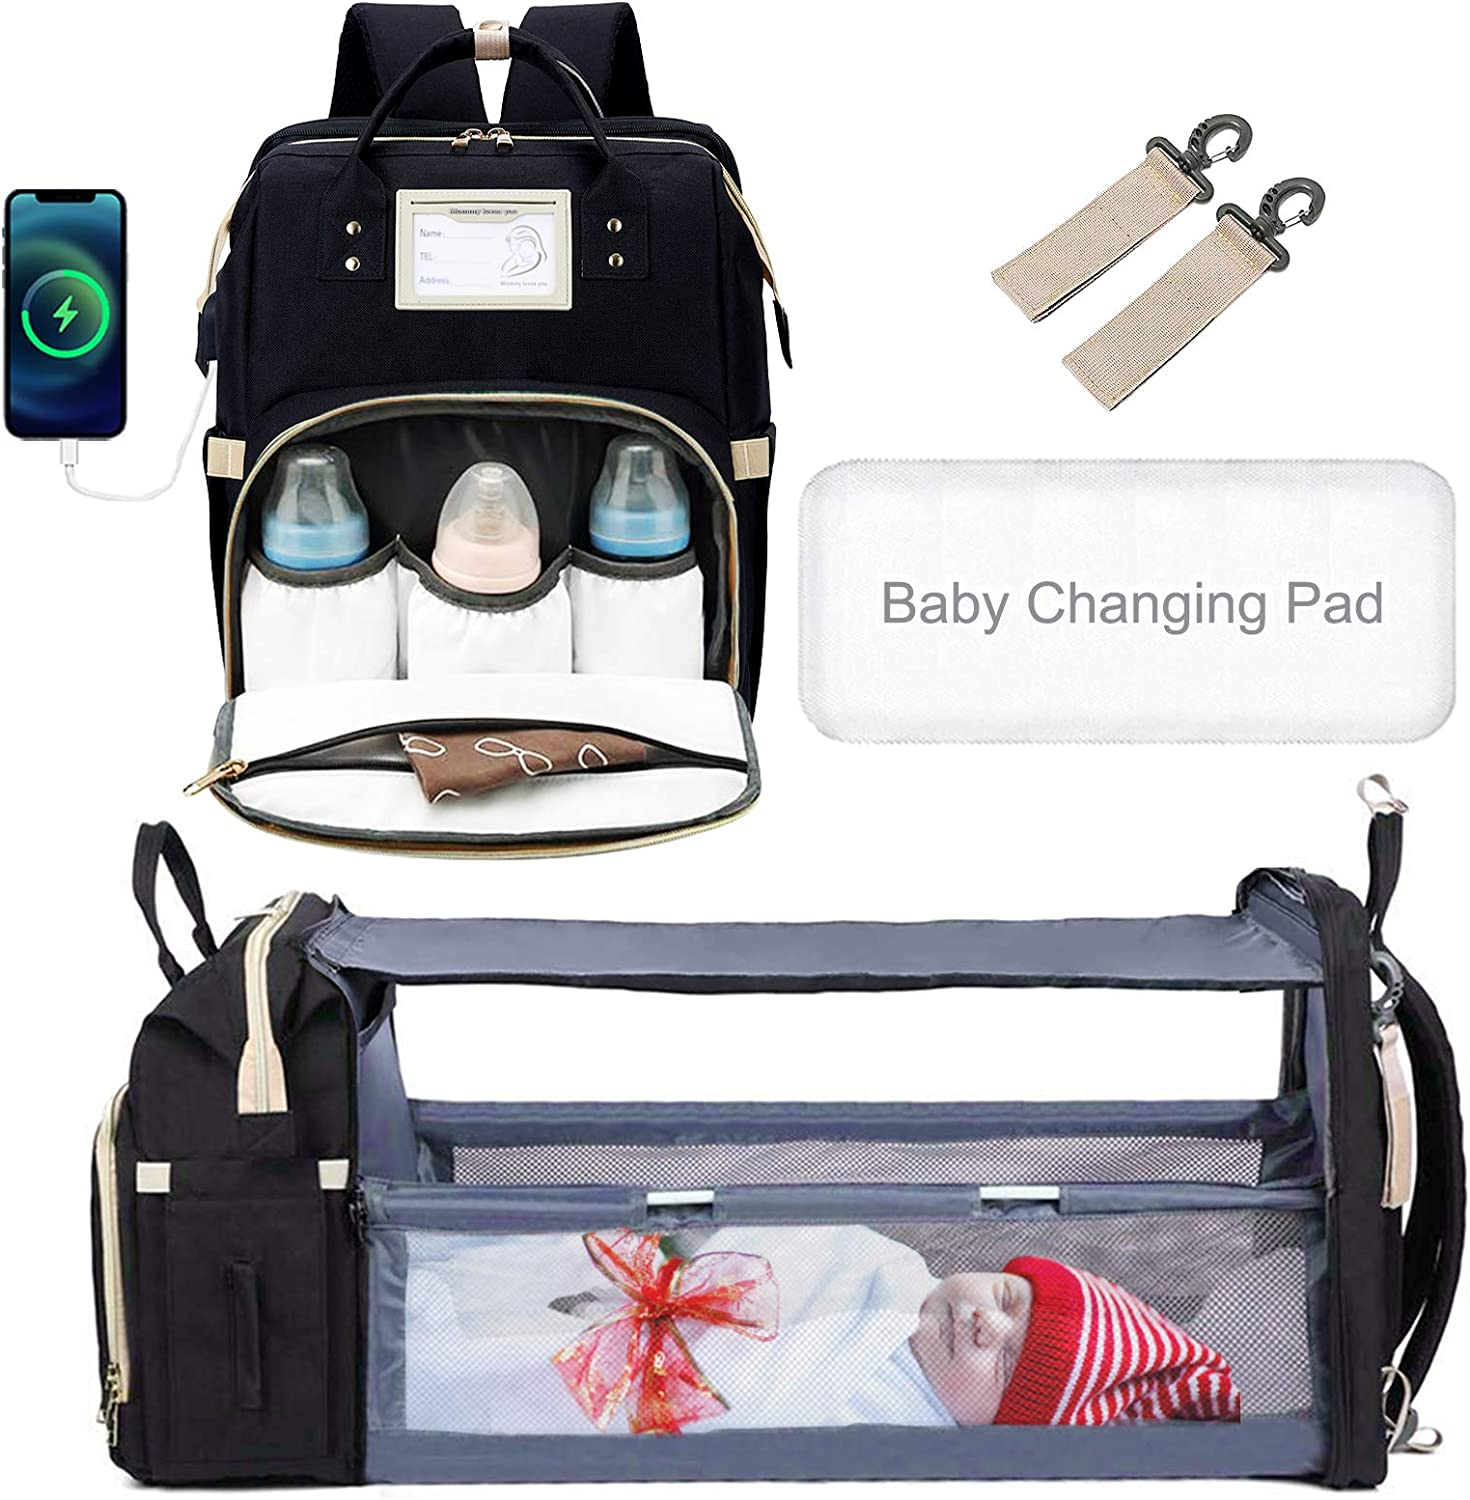 Baby Diaper Bag Backpack with Changing Station, 55L Travel Diaper Bag with Foldable Mat Bed, Waterproof Large Capacity Mummy Bag for Outdoor Shopping Camping Black